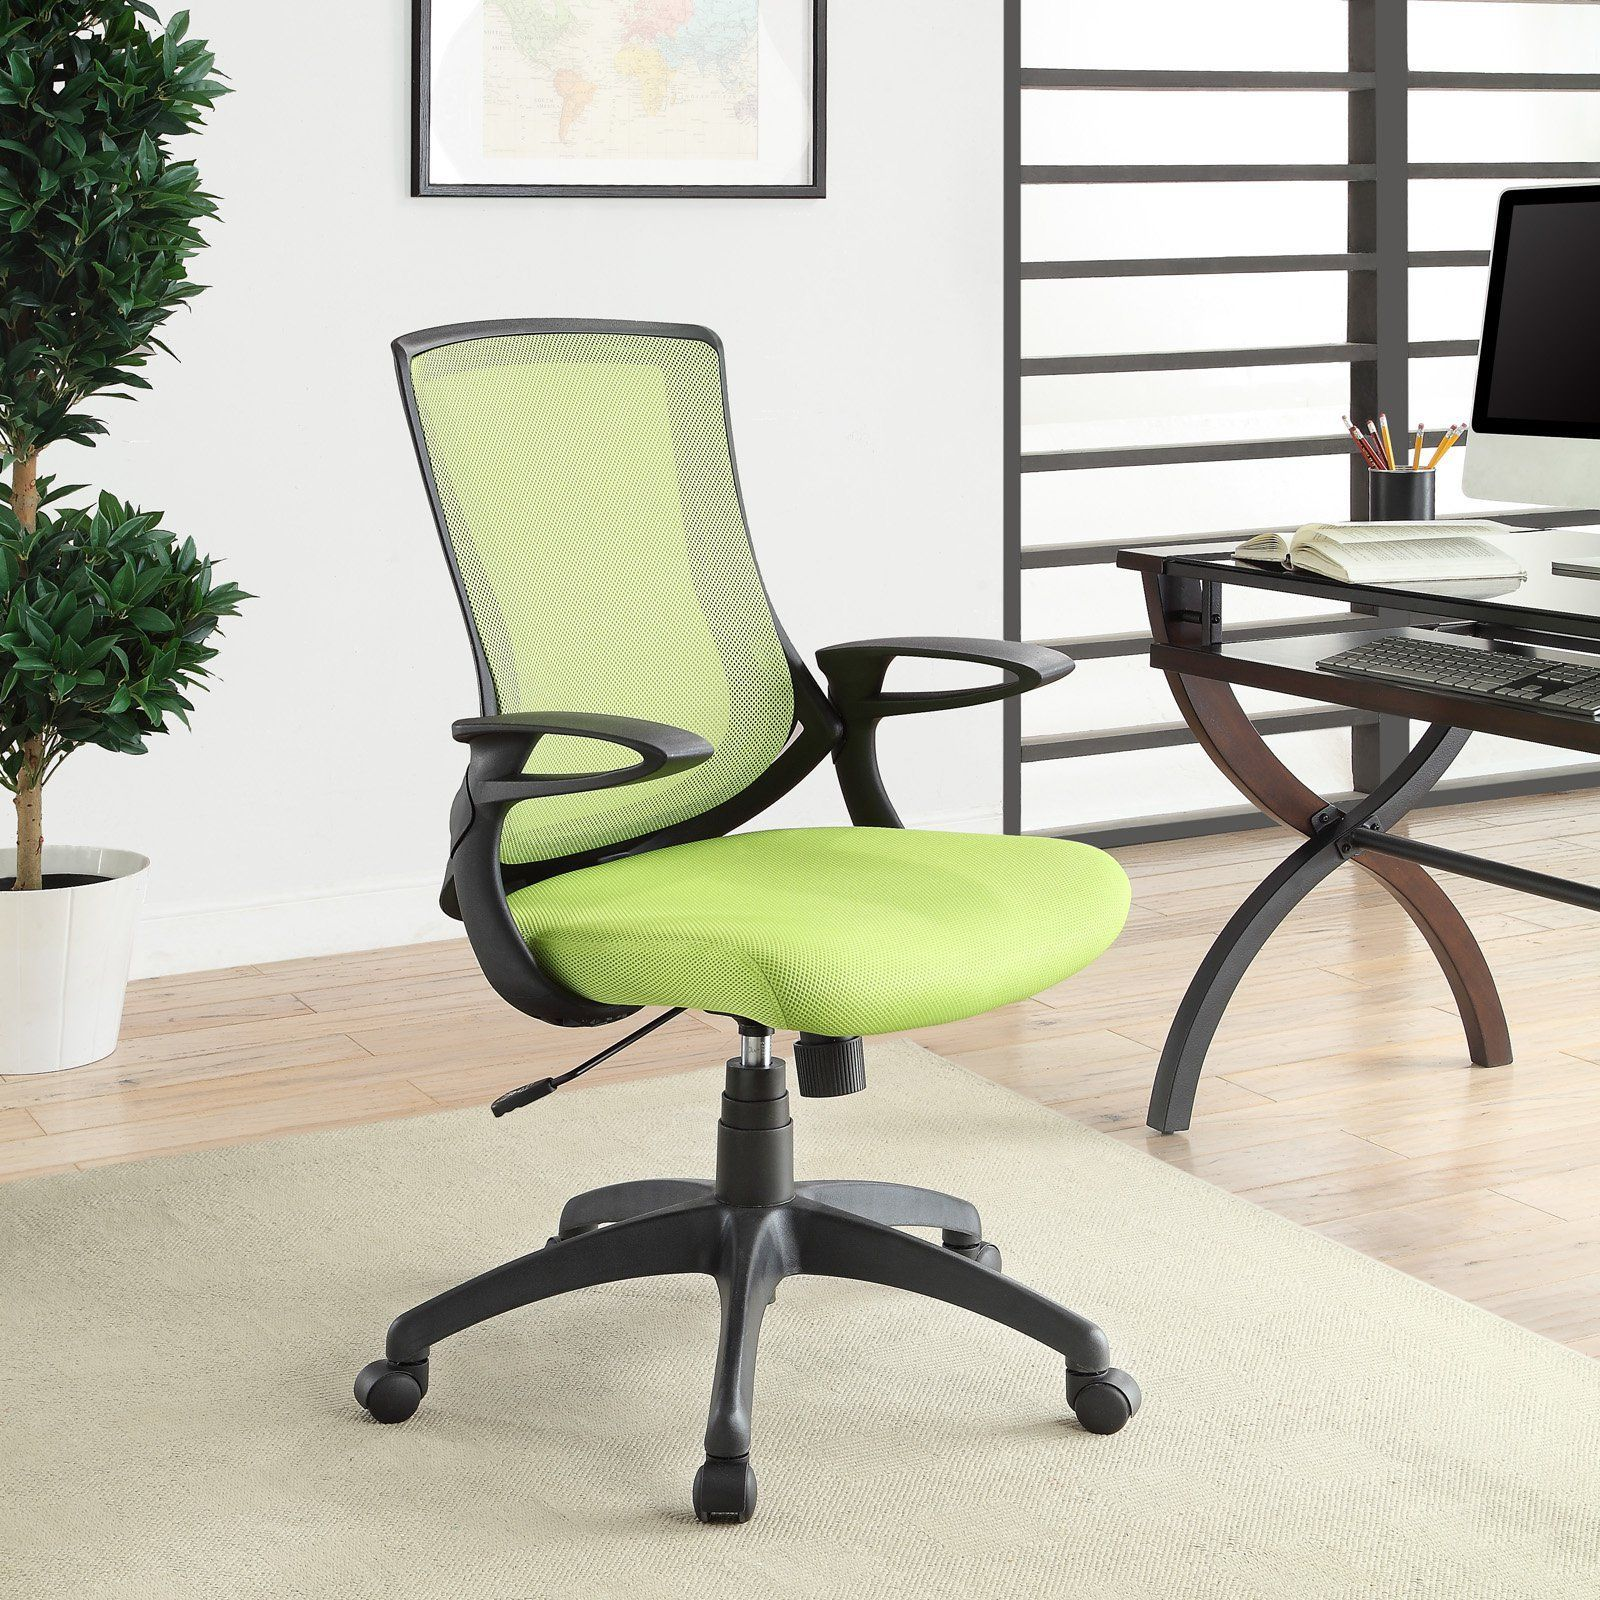 Linon Home Carlyle Lime Office Chair - 50LIME50  Office chair